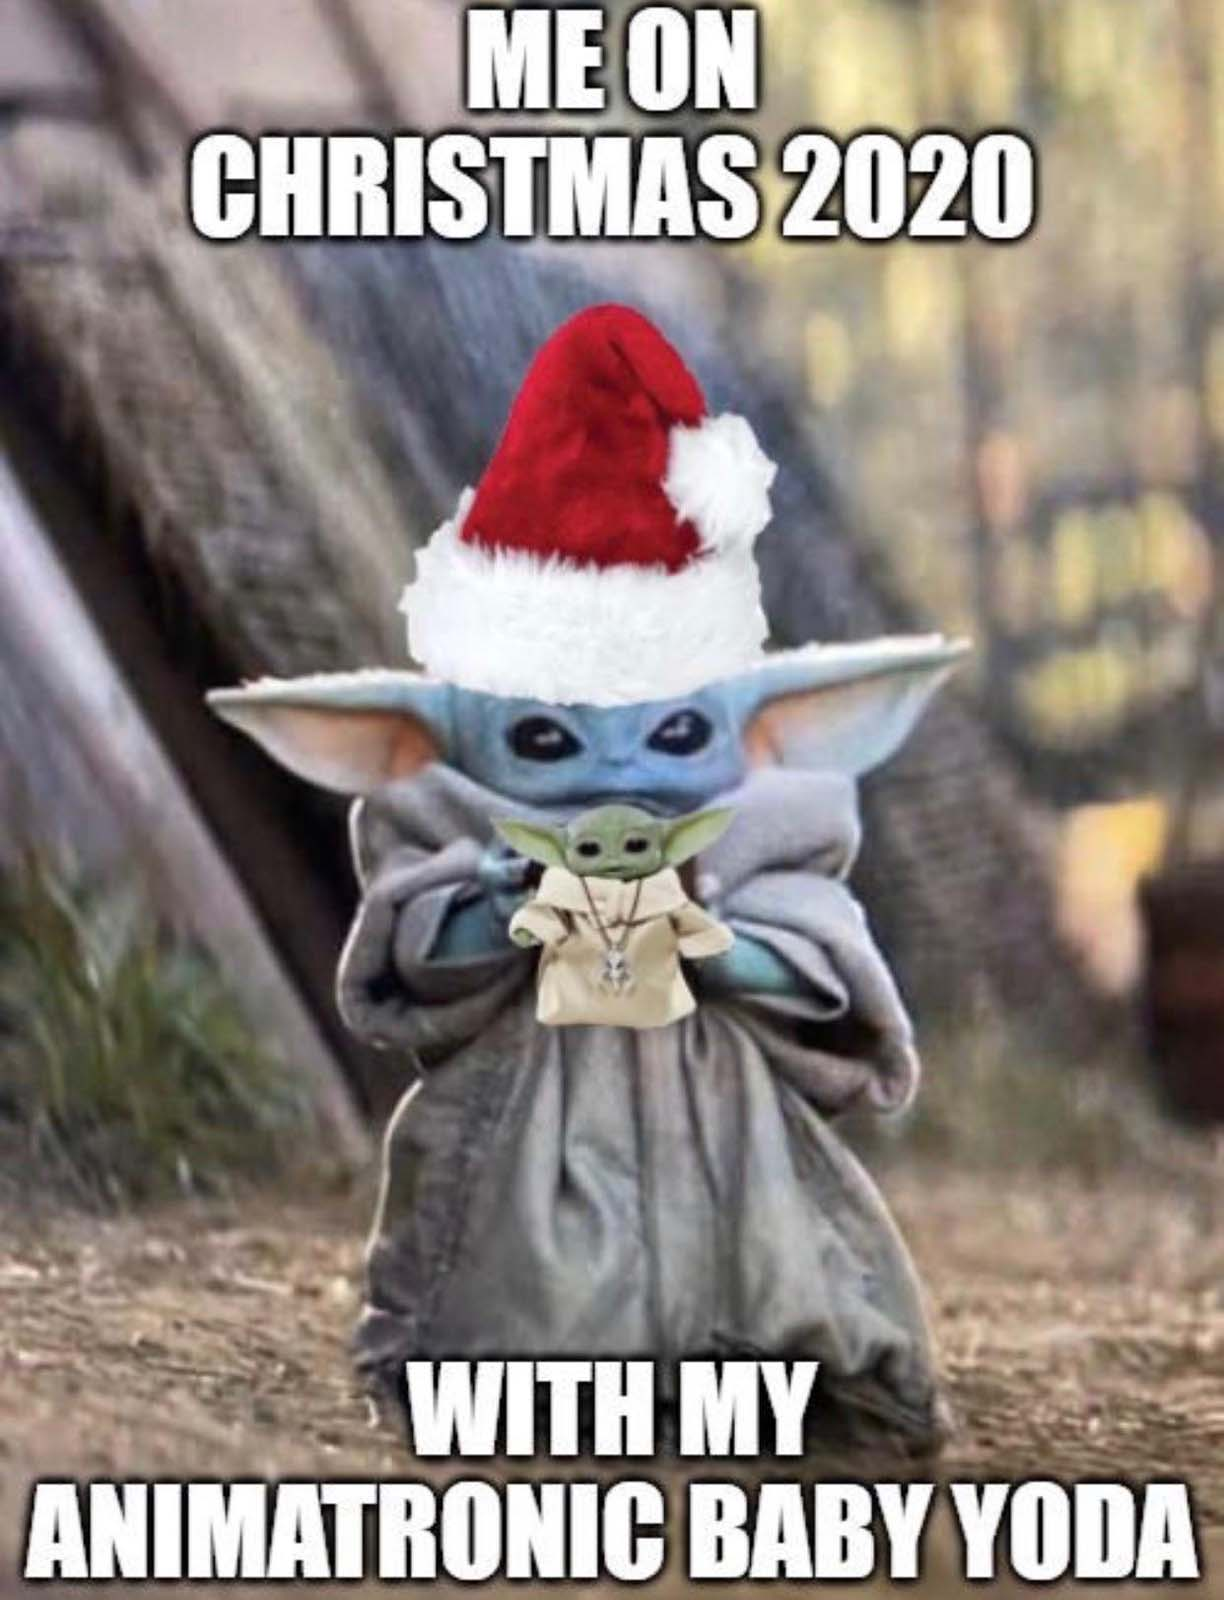 All I Want For Christmas Trending Memes 2020 Find your Christmas cheer with these holiday memes – Film Daily